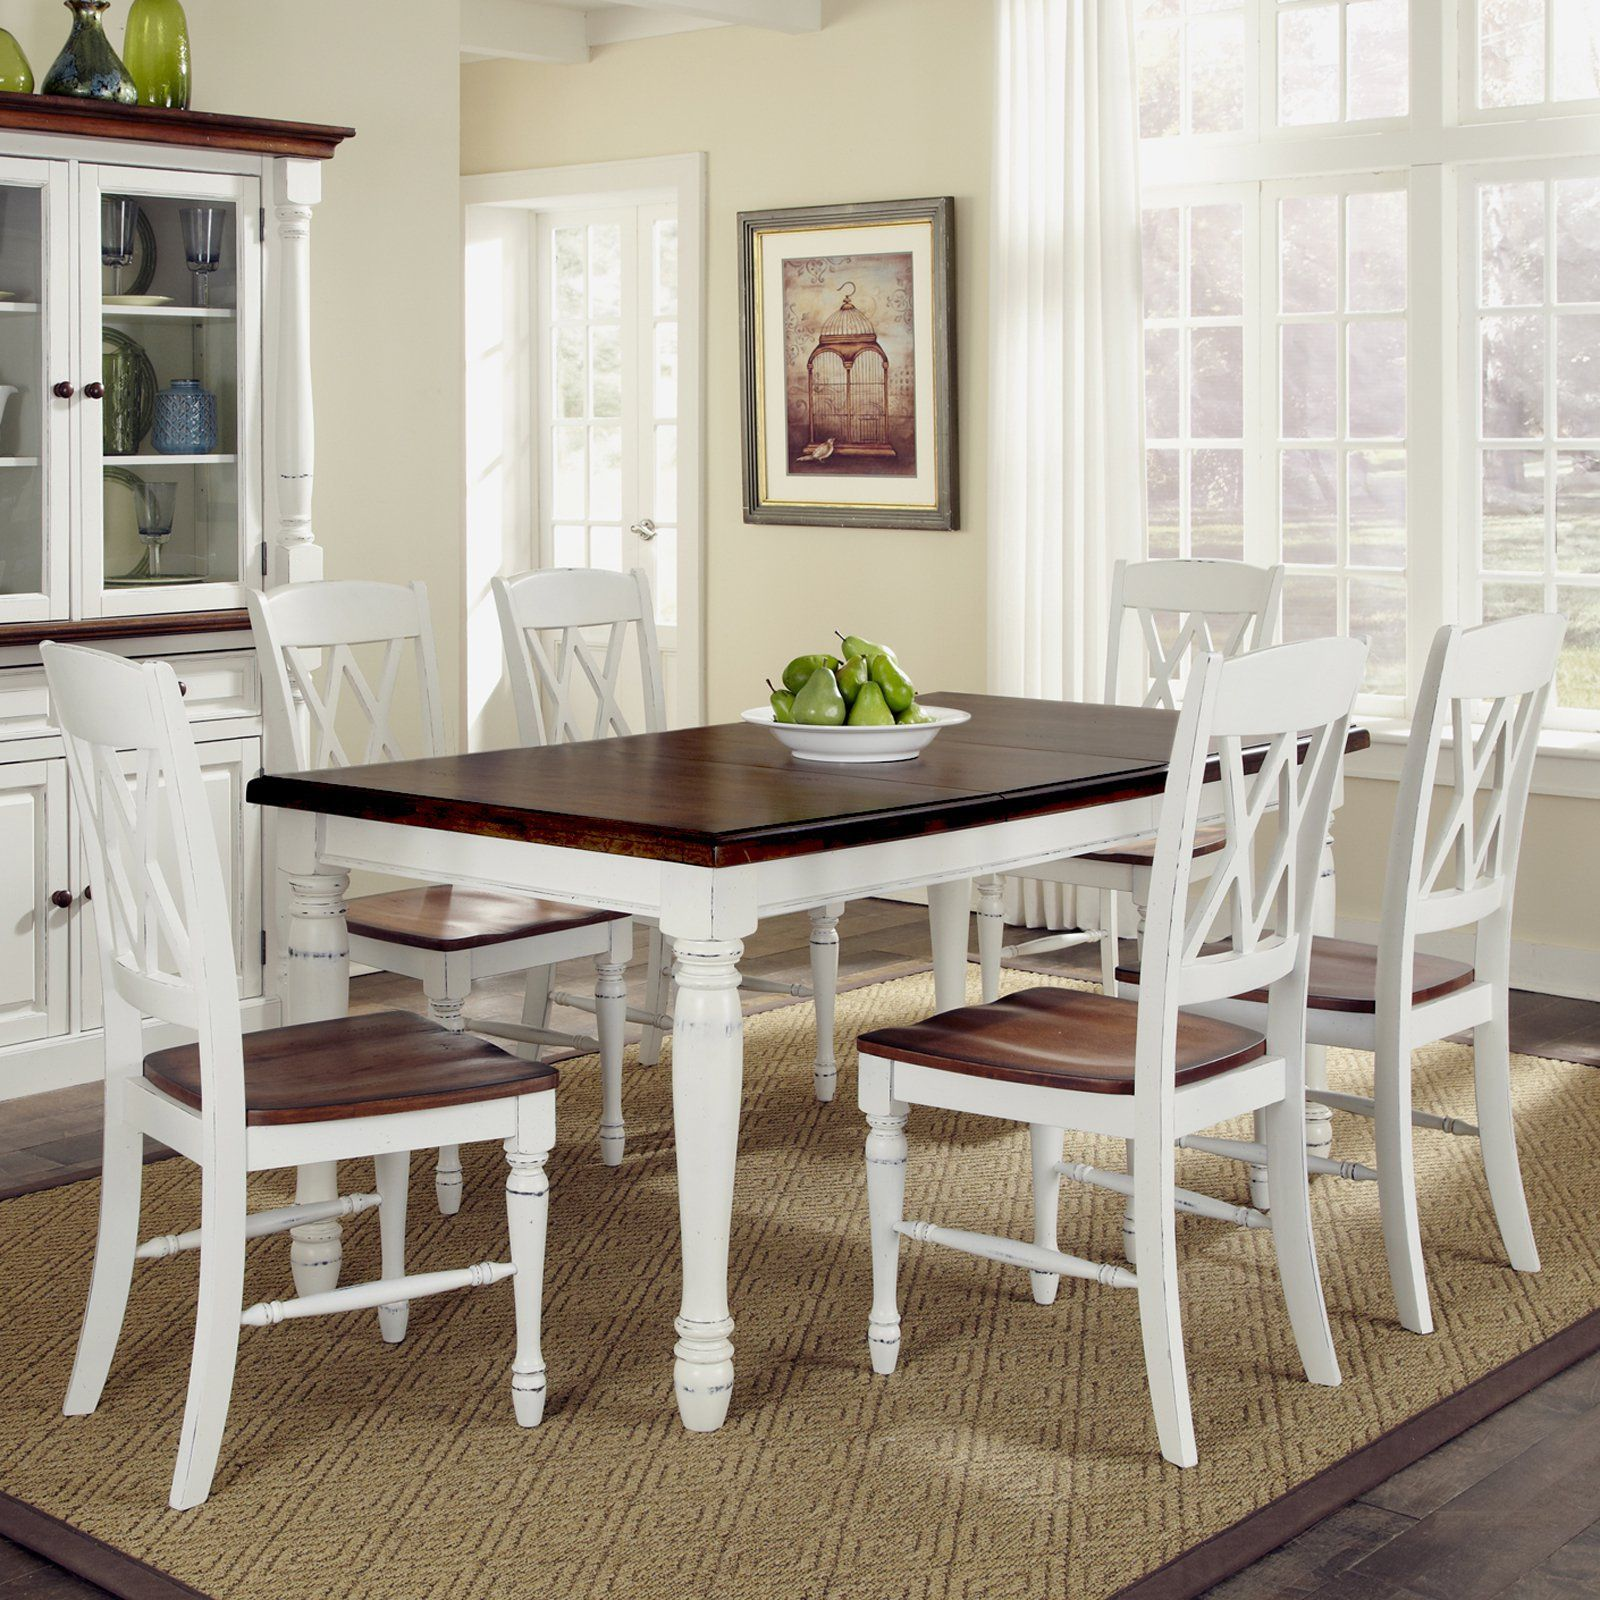 Gallery1 Margin Auto #gallery1 Galleryitem Float Left Beauteous Cheap Dining Room Chairs Set Of 6 Review